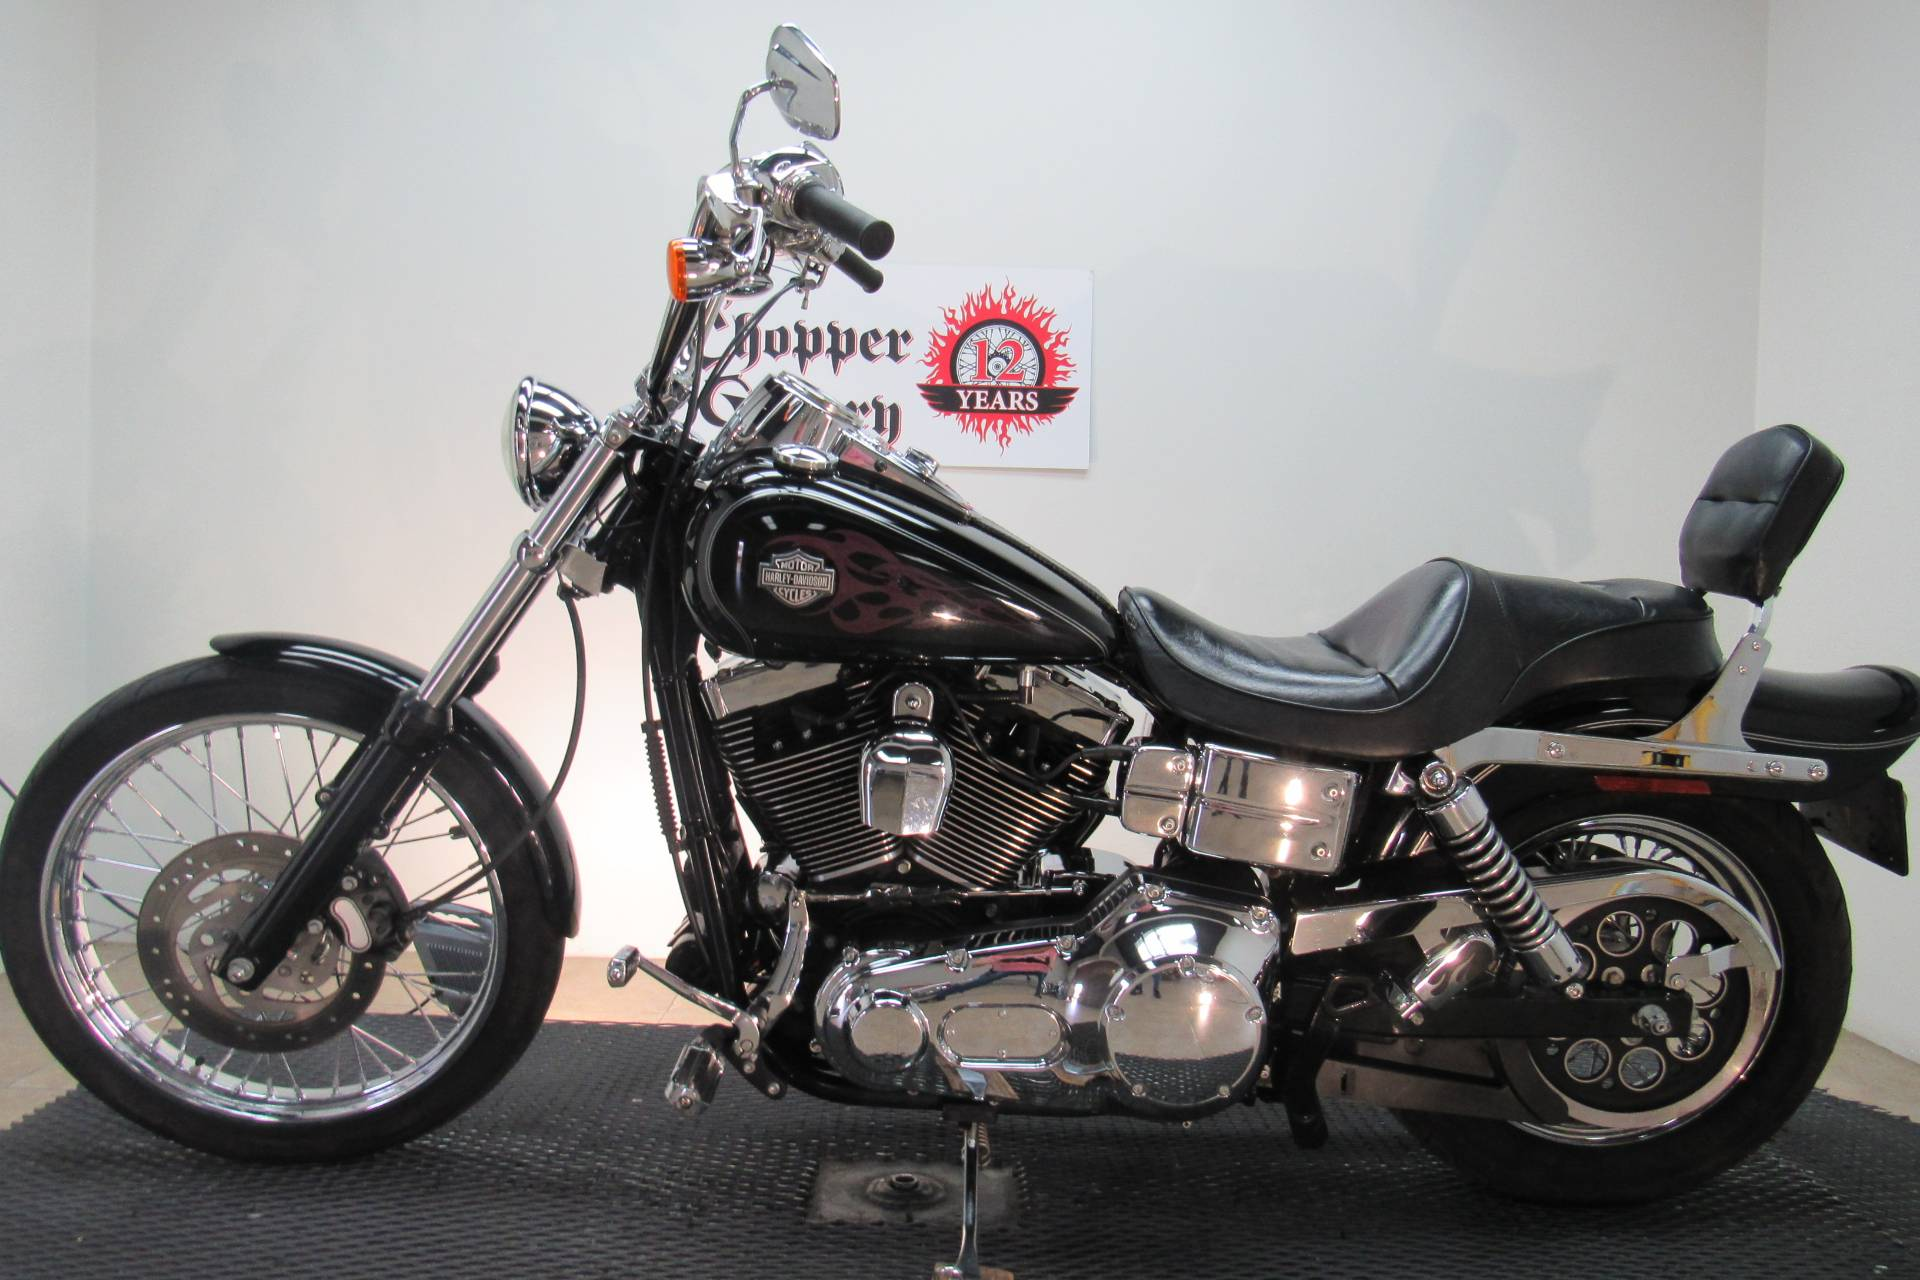 2005 Harley-Davidson FXDWG/FXDWGI Dyna Wide Glide® in Temecula, California - Photo 2